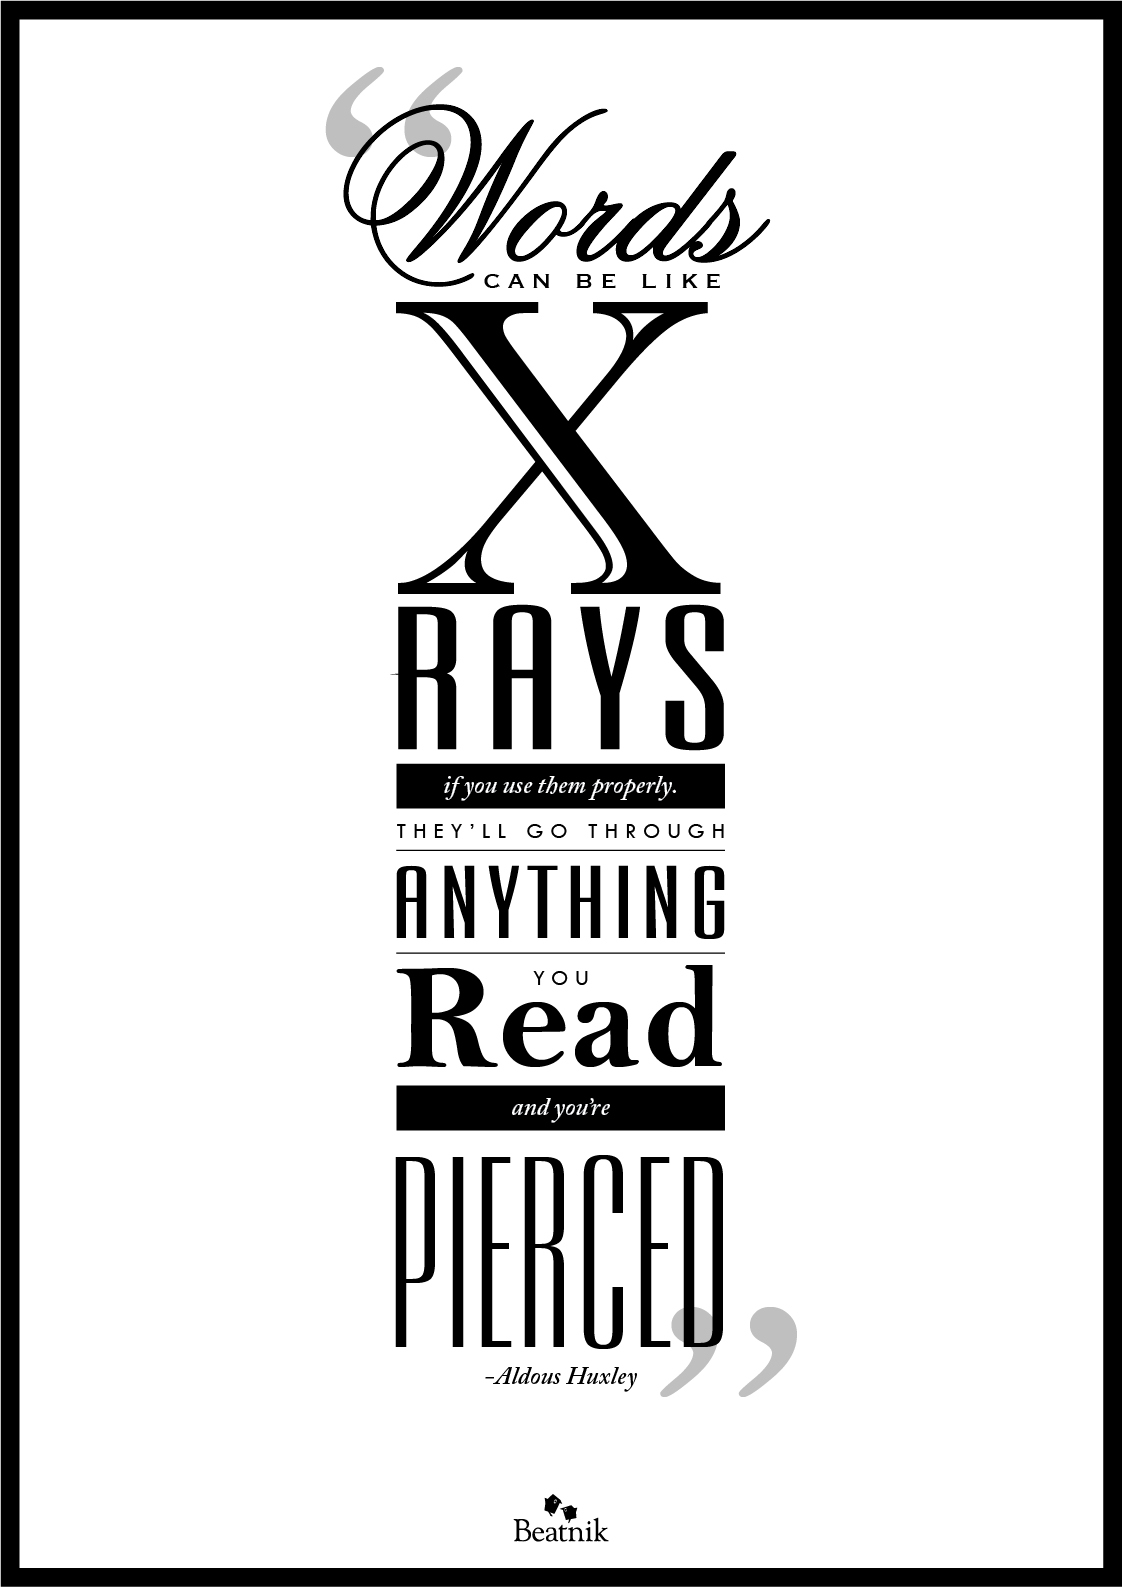 """Words can be like X-rays if you use them properly — they'll go through anything. You read and you're pierced.""  -Aldous Huxley"